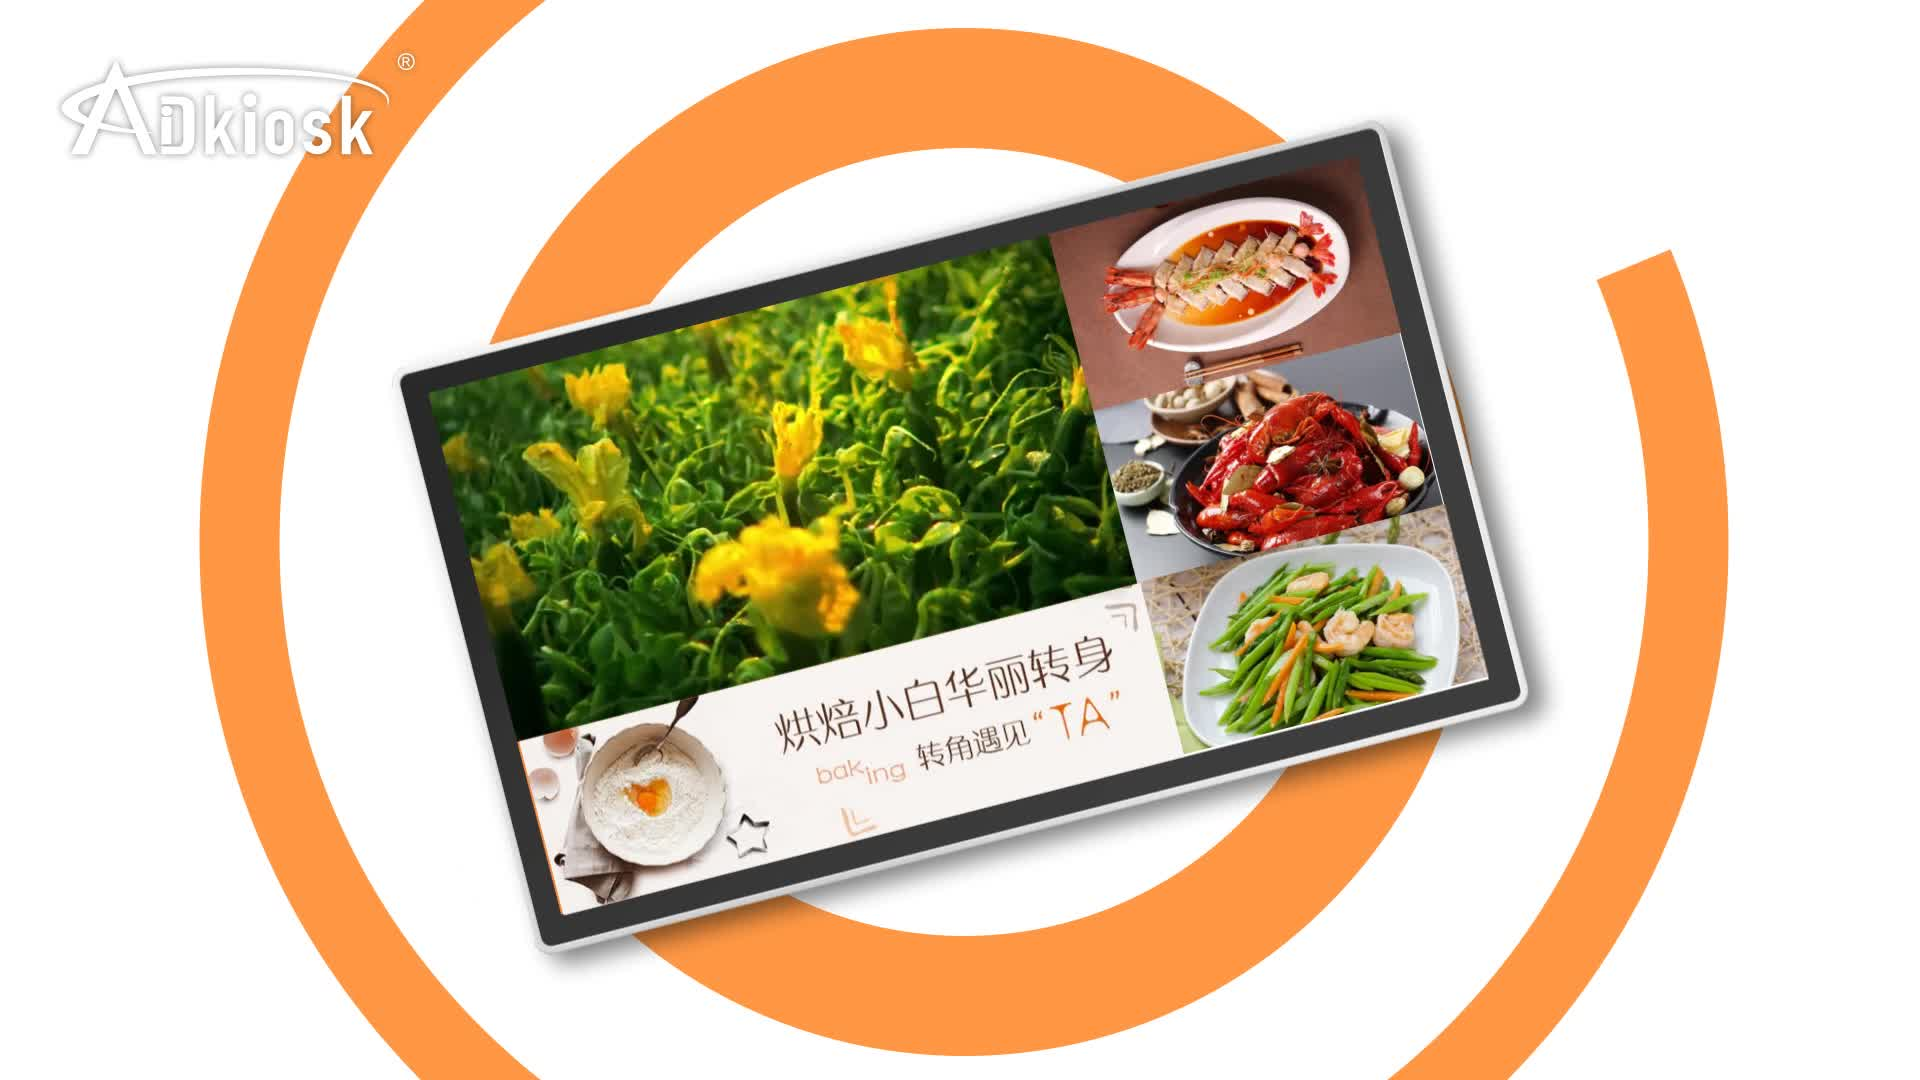 43inch wall mount lcd advertisement digital display monitor android network wifi 3g/4g advertising media player